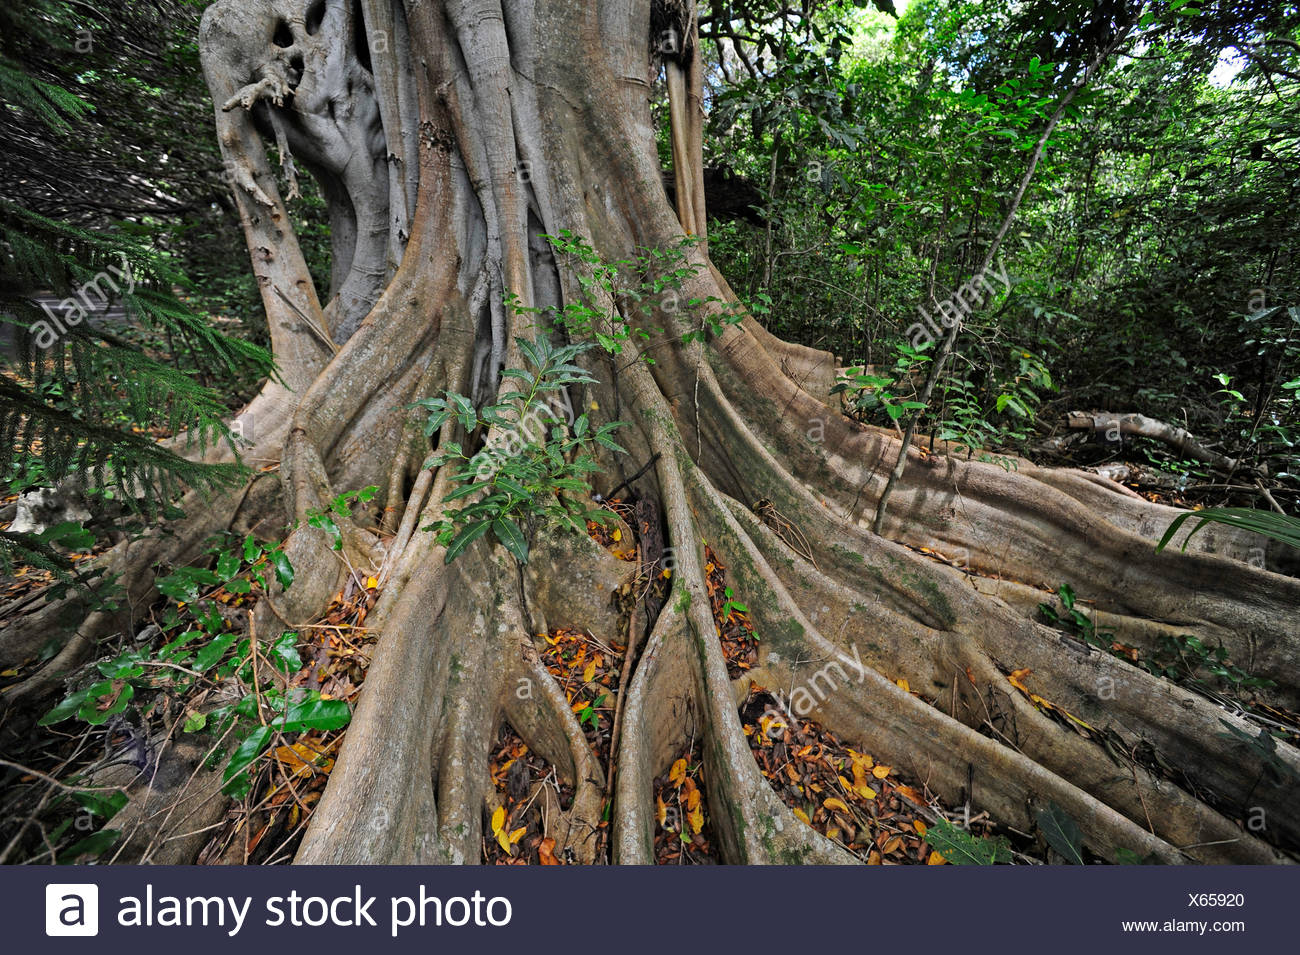 tree roots in rainforest, New Caledonia, Ile des Pins - Stock Image